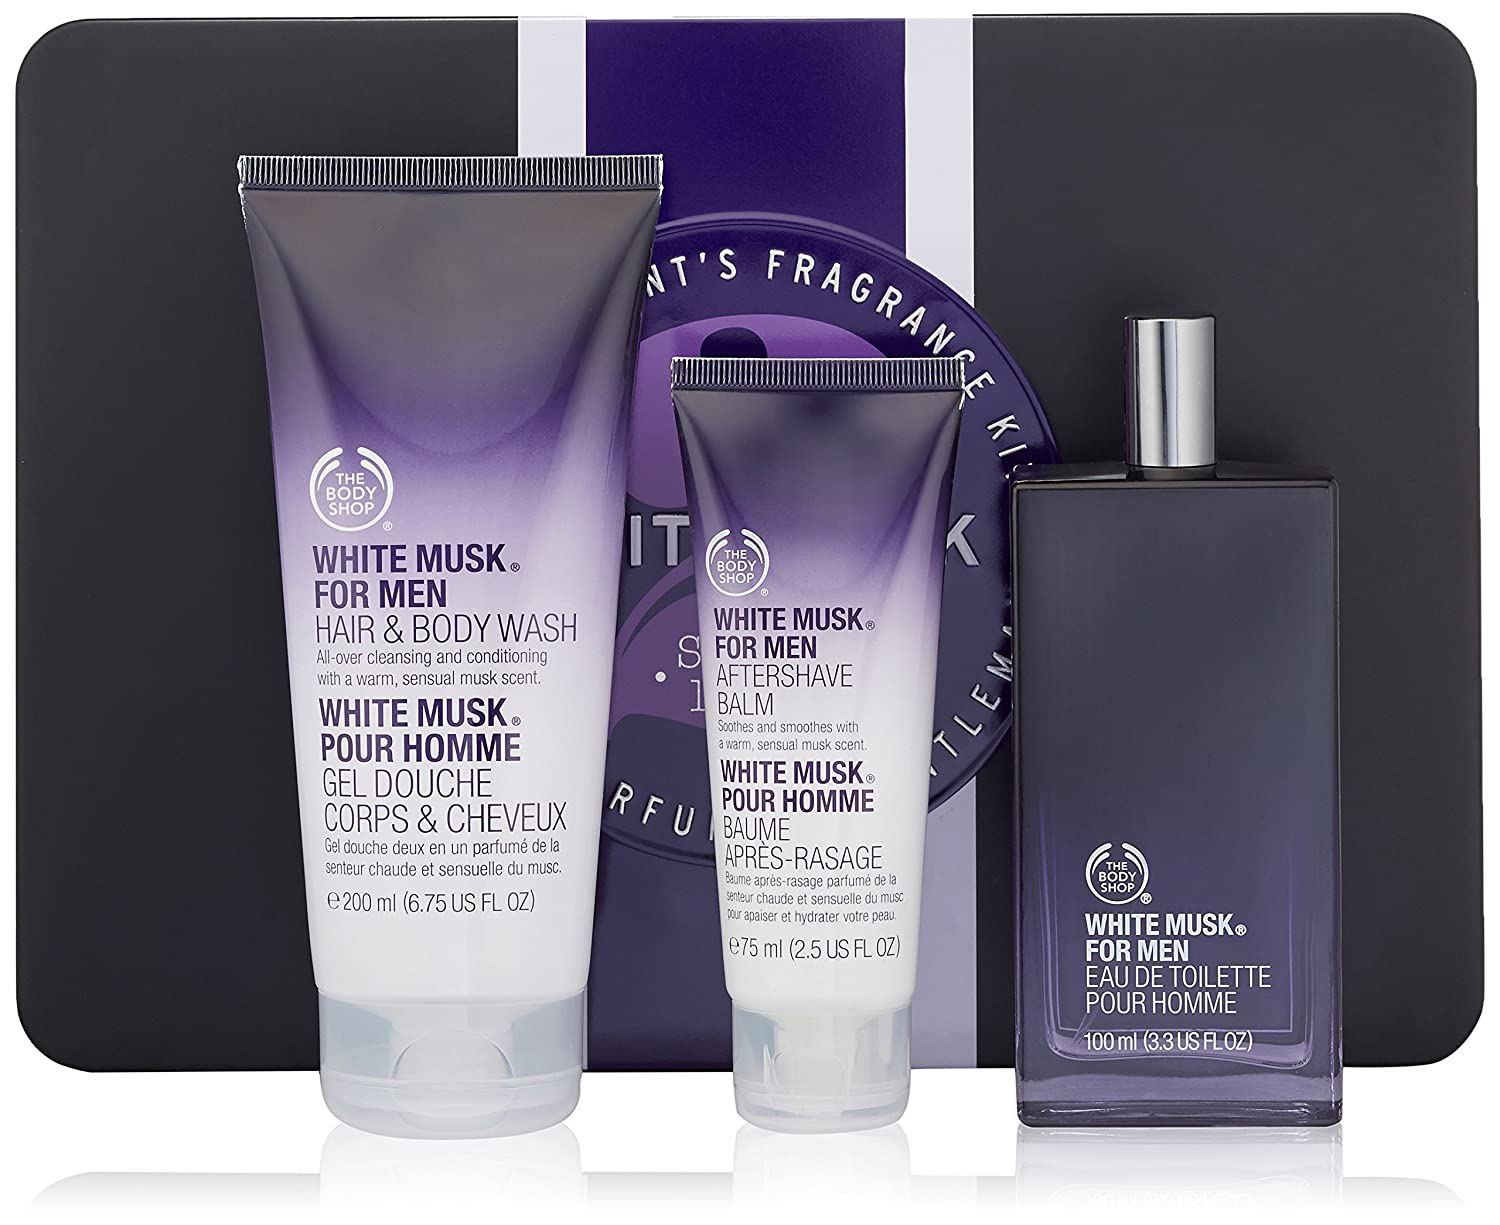 & Amazon.com : The Body Shop White Musk for Men Gift Set : Beauty